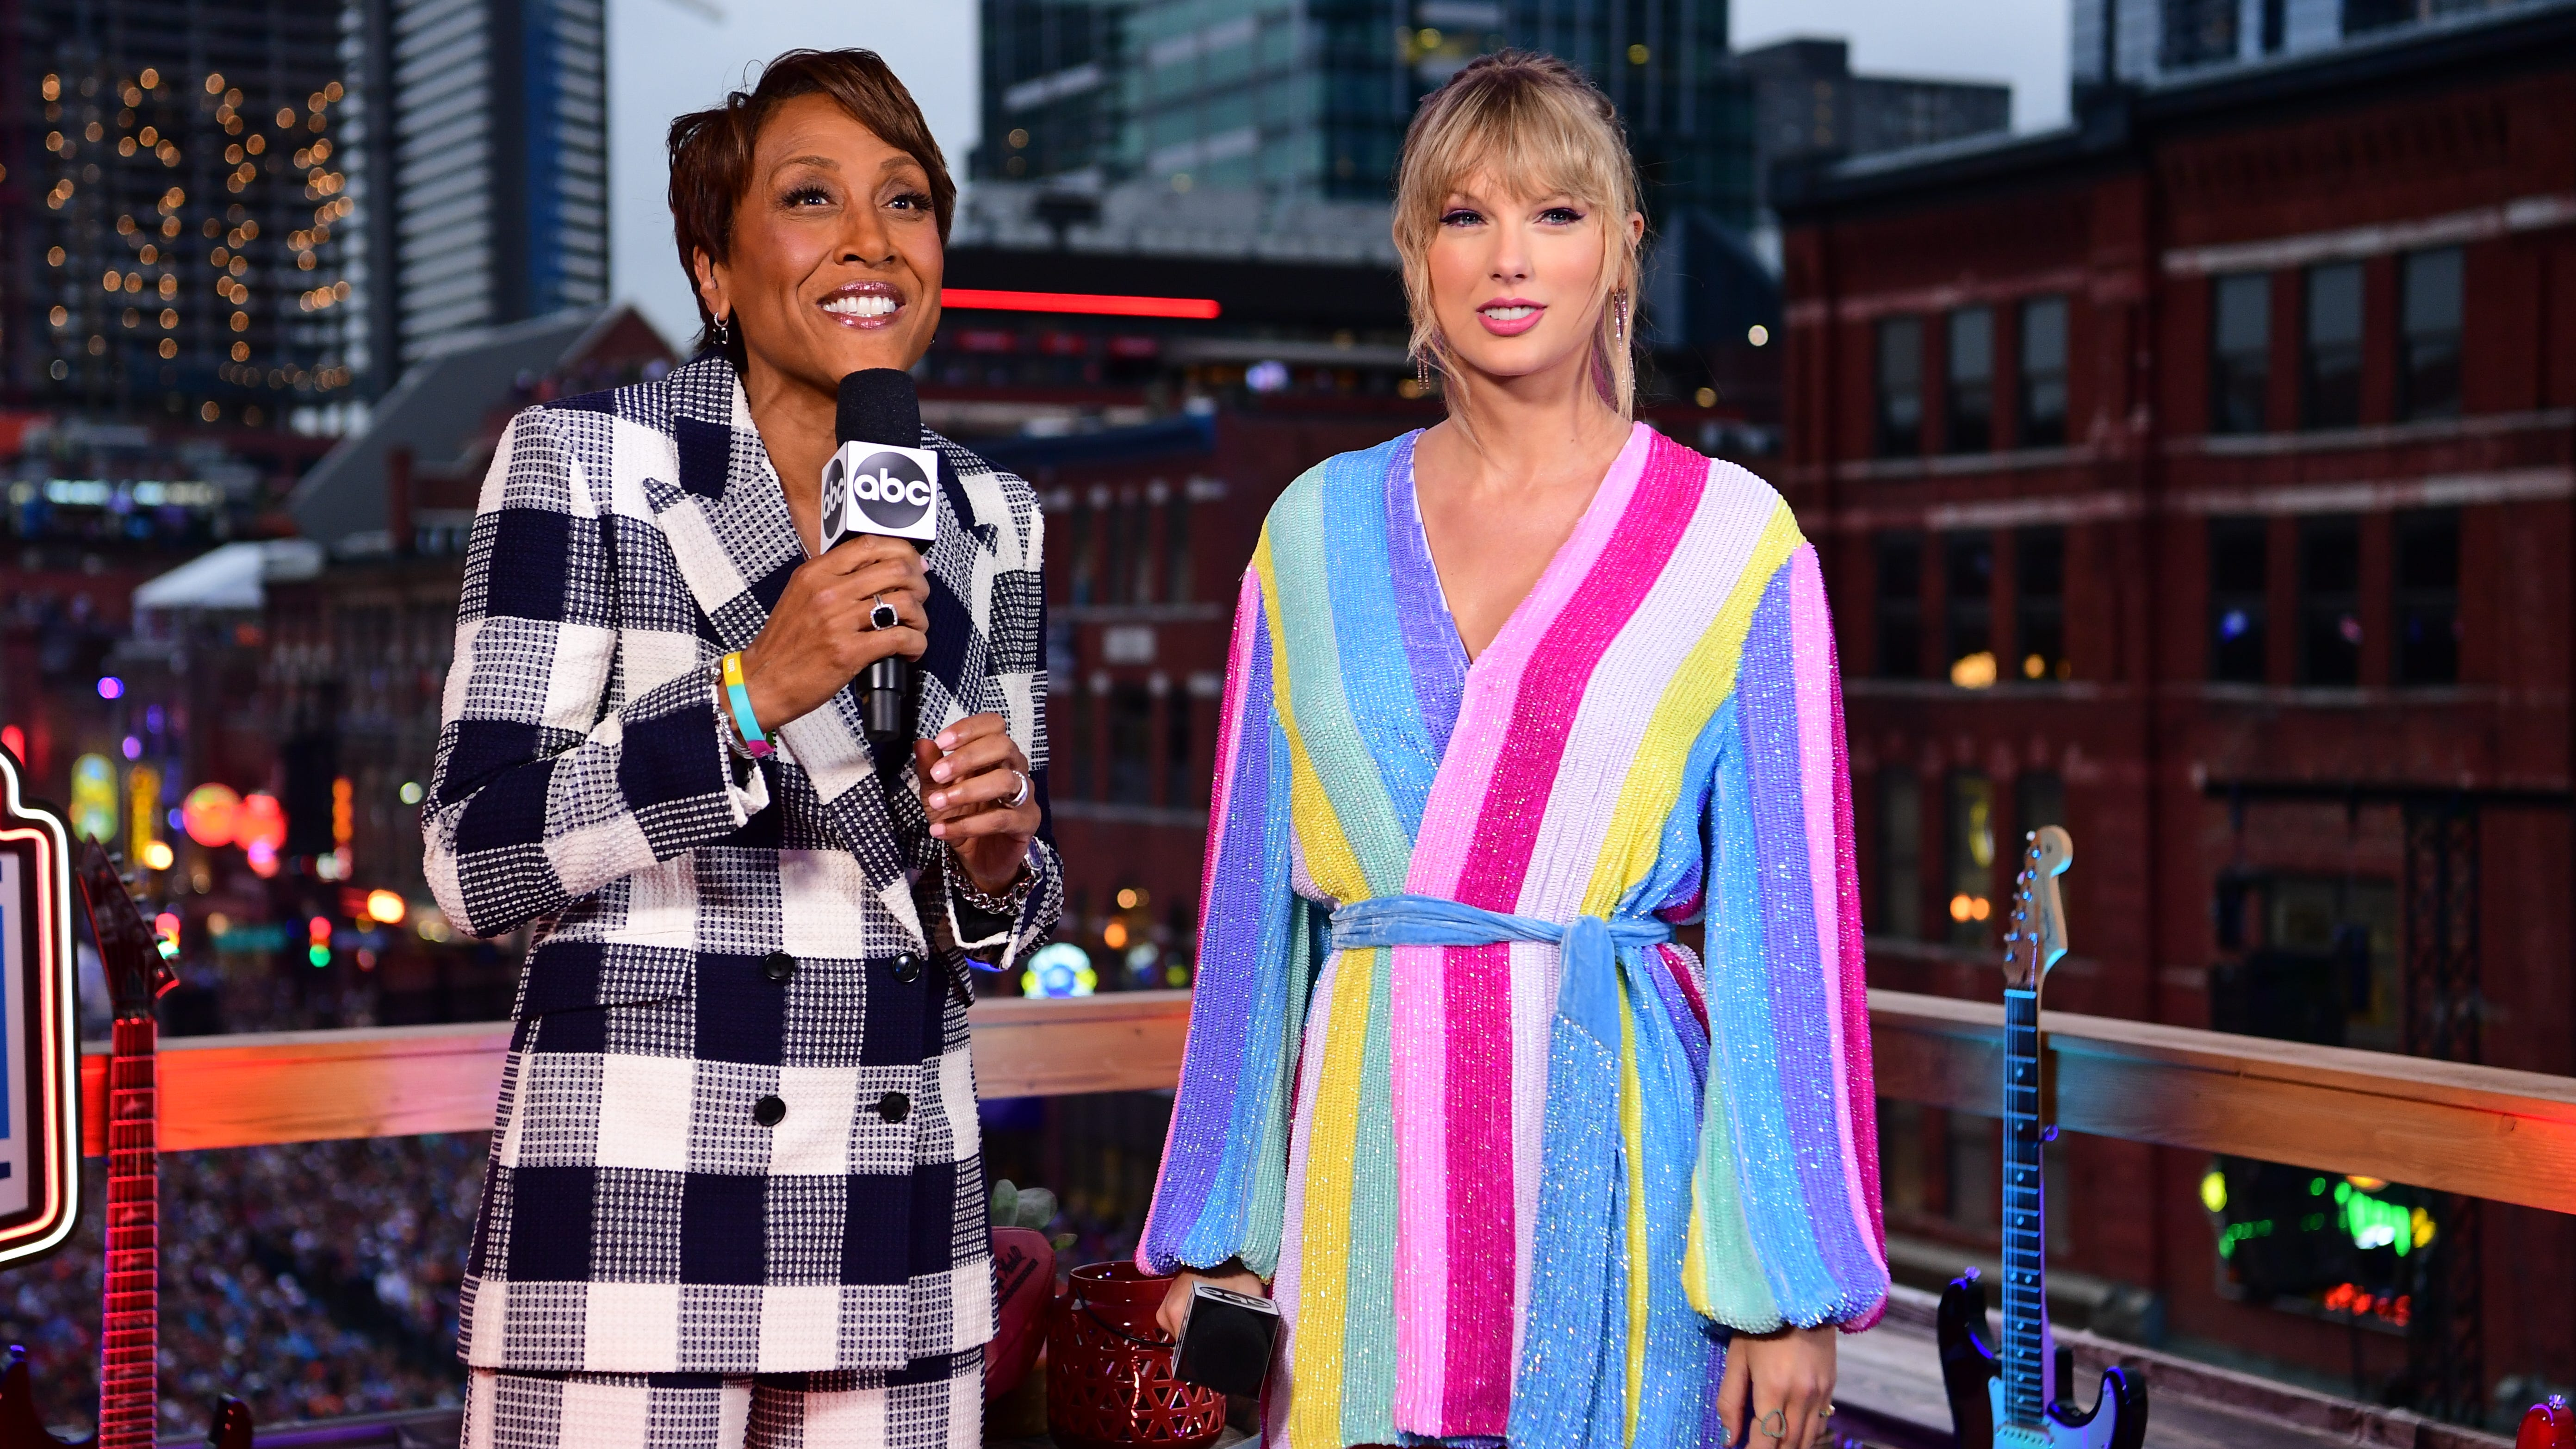 Taylor Swift, right, joins ABC's Robin Roberts during the 2019 NFL Draft.